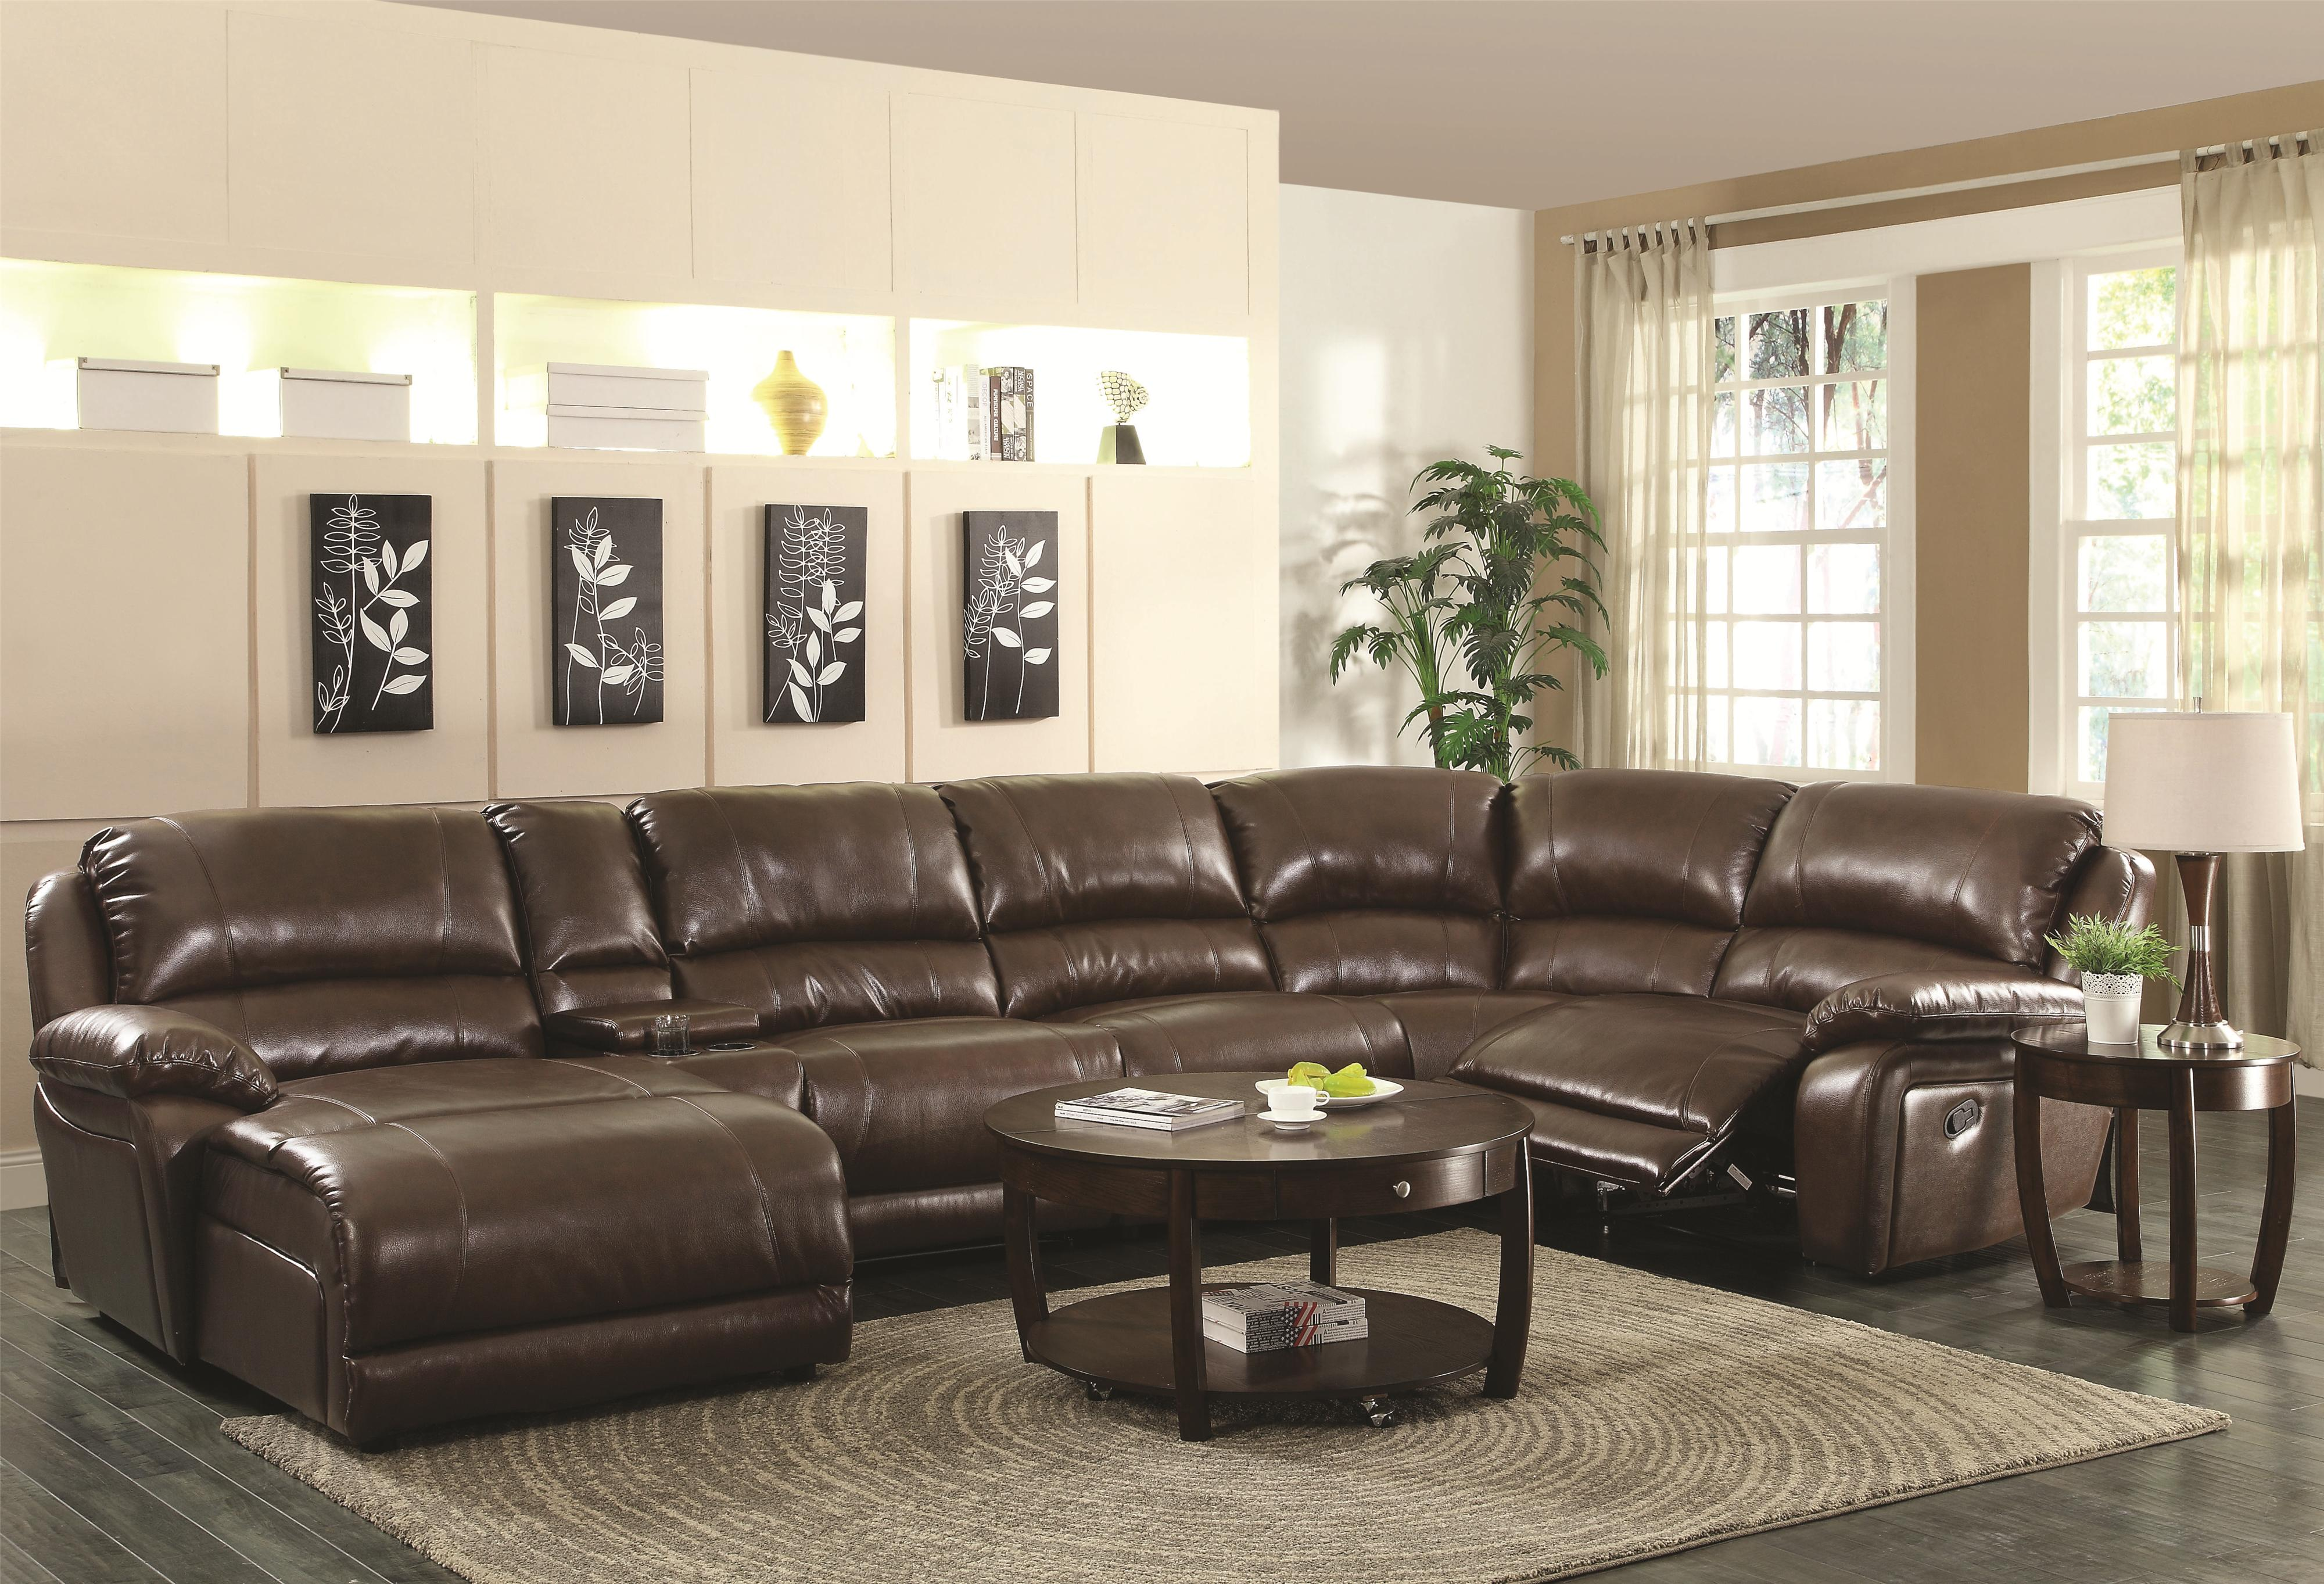 Coaster Mackenzie Chestnut 6-Piece Reclining Sectional Sofa with Casual Style - Coaster Fine Furniture : reclining sectional sofas with chaise - Sectionals, Sofas & Couches